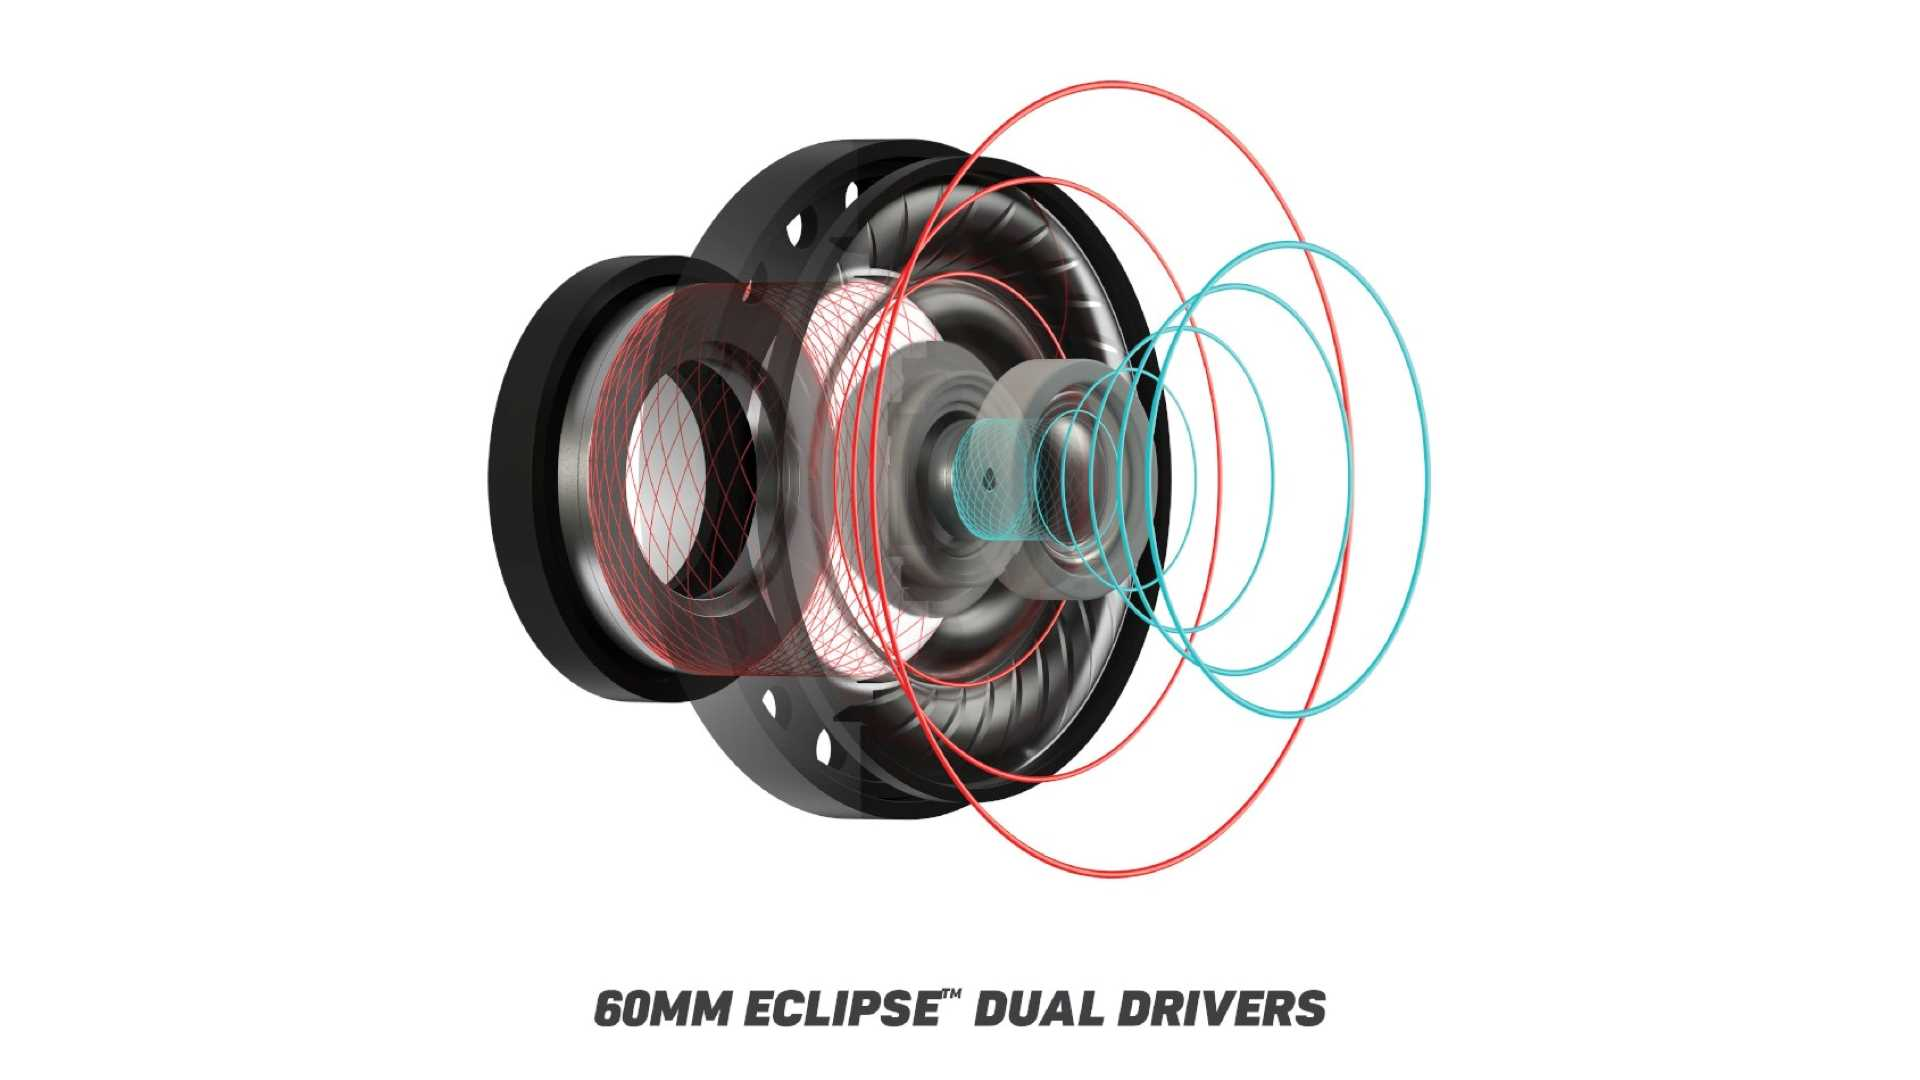 Turtle Beach Recon 500 - 60 mm Eclipse Duals Drivers